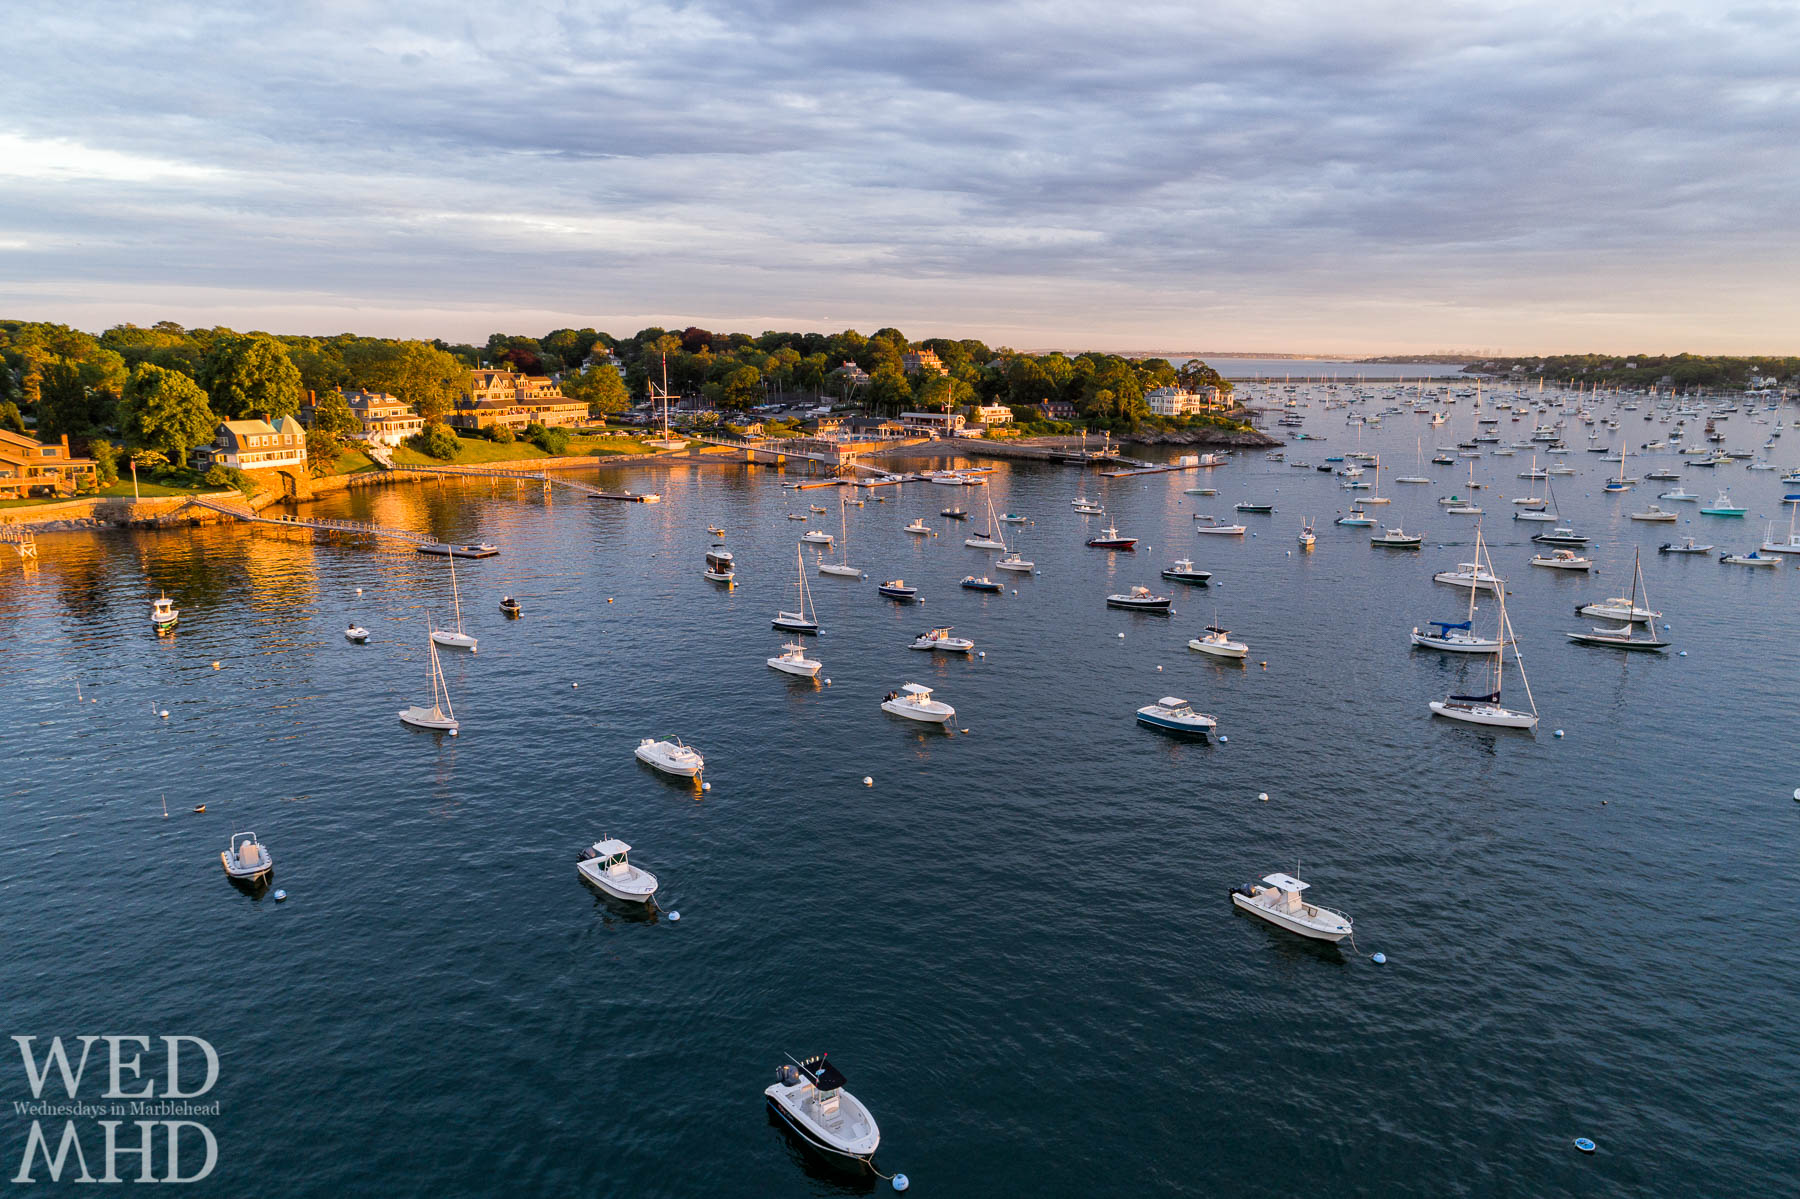 An aerial view of boats moored in Marblehead Harbor on a warm June evening seems a perfect image for the weekend